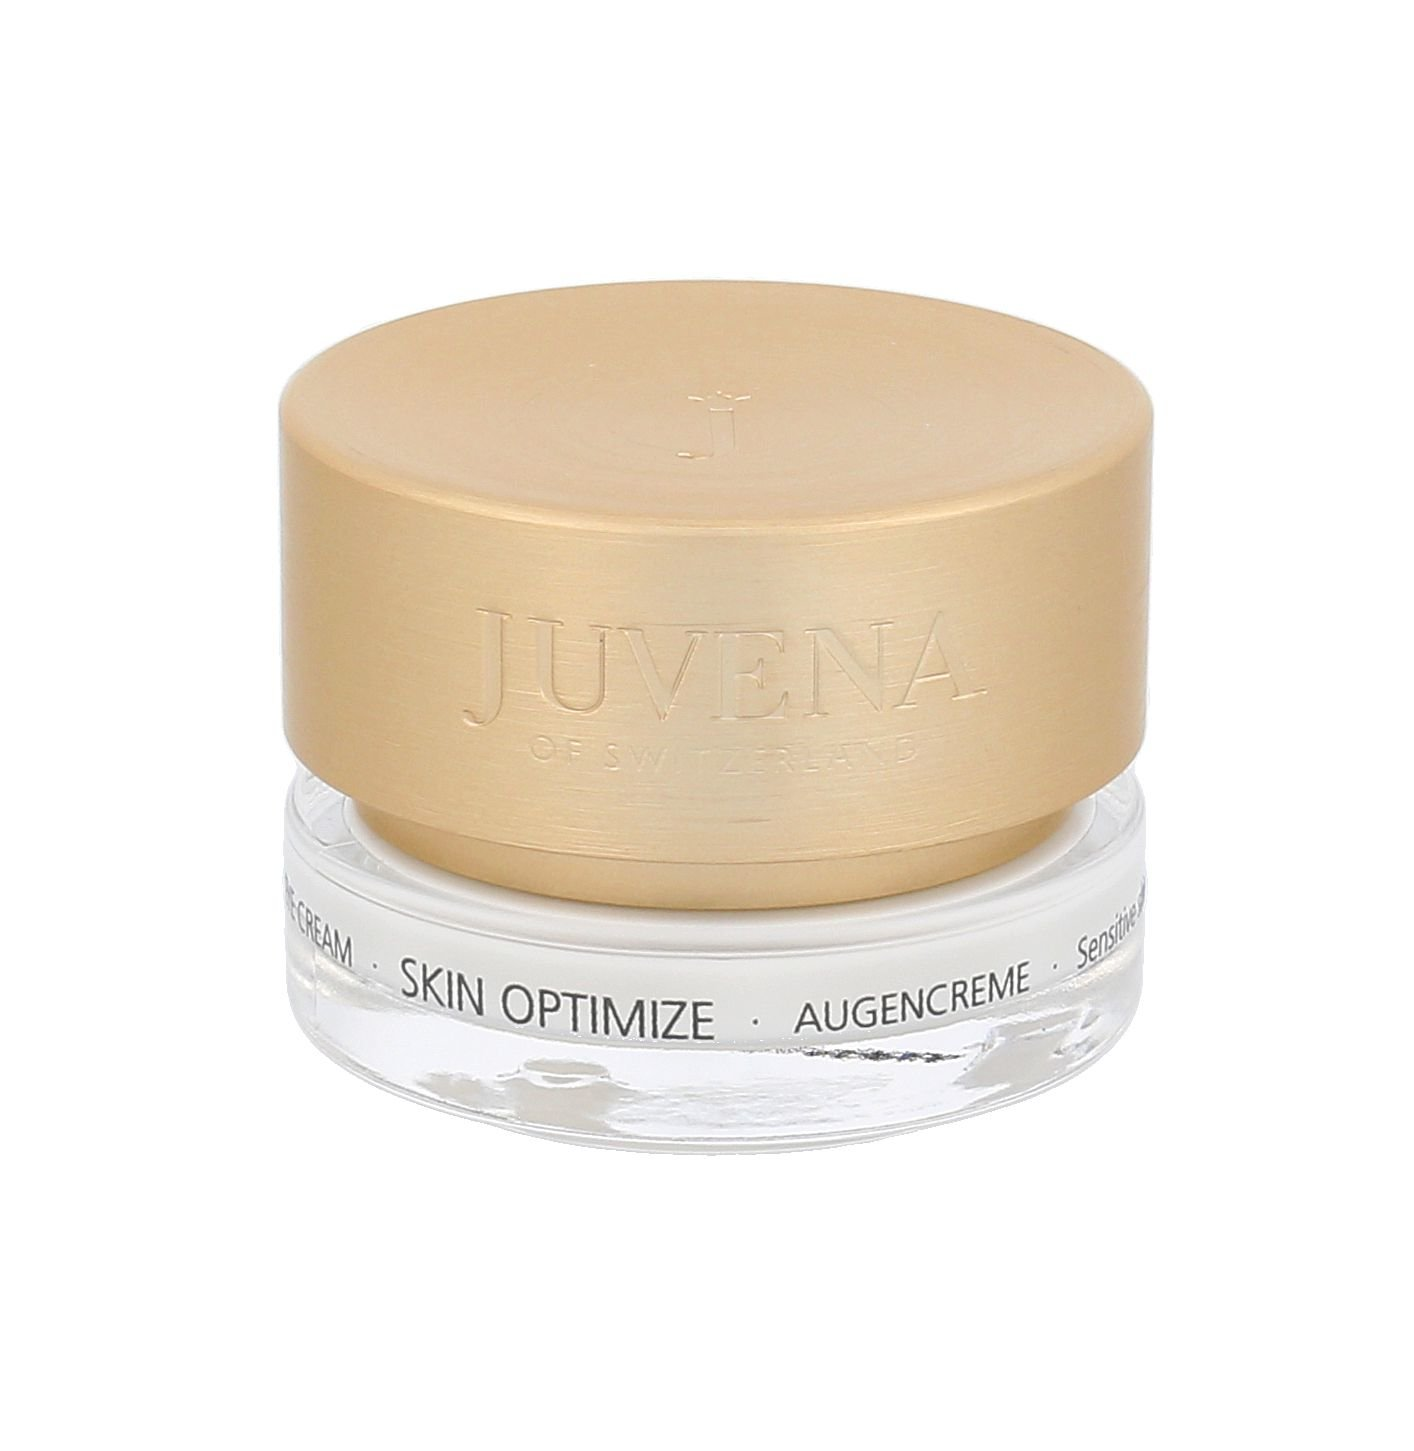 Juvena Skin Optimize Cosmetic 15ml